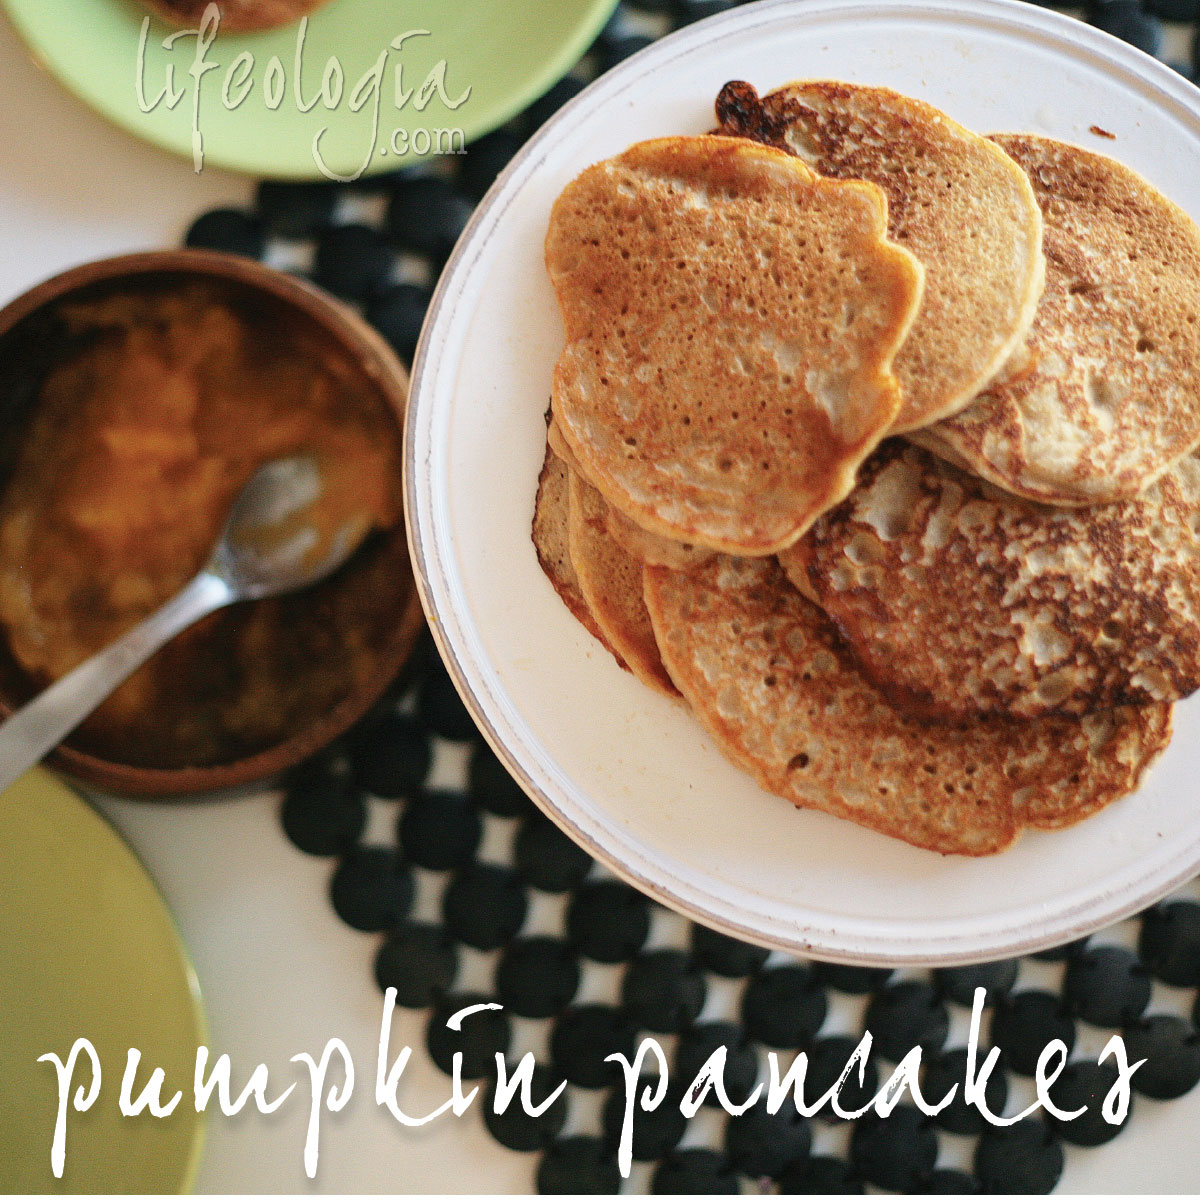 pumpkin-pancakes easy gluten free vegan recipe